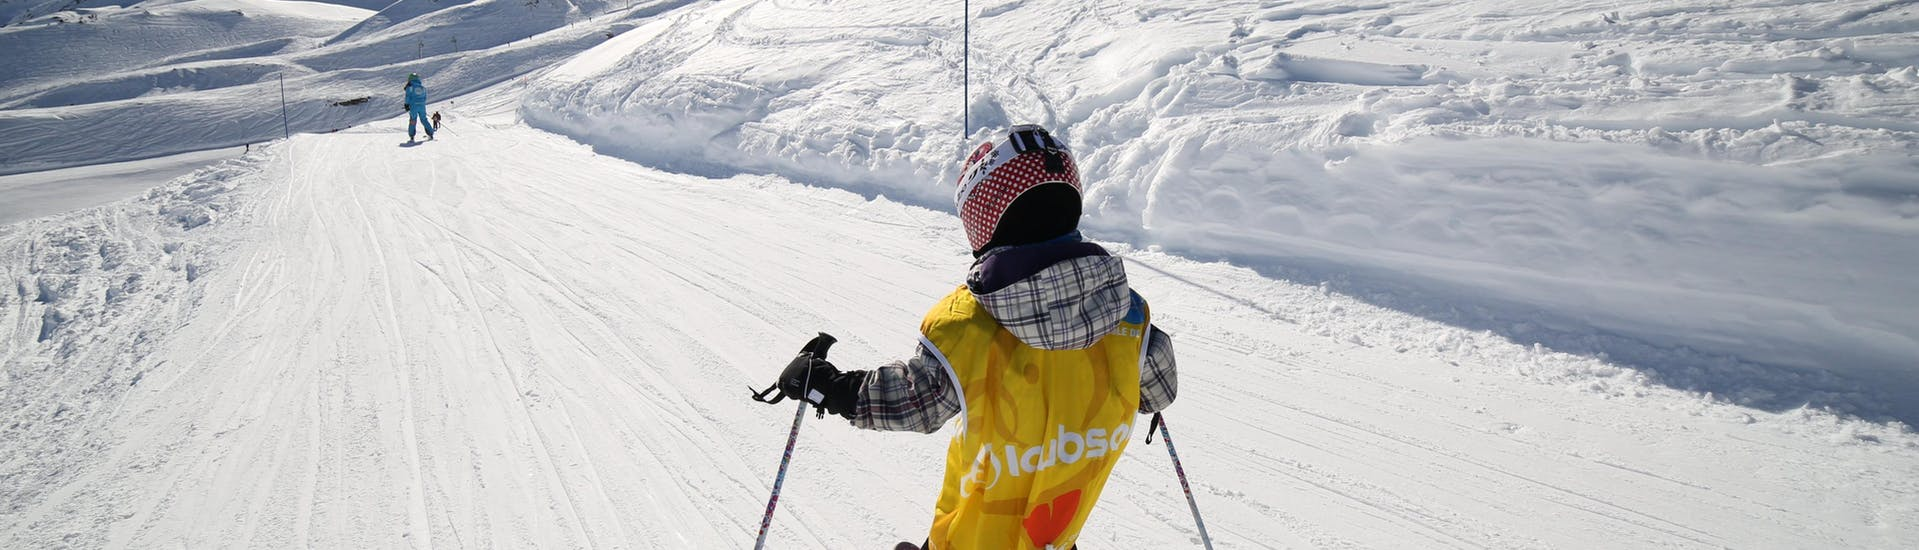 A youg skier is skiing down a snowy slope during his Kids Ski Lessons (3-6 years) - Low Season - All Levels with the ski school ESI Font Romeu.